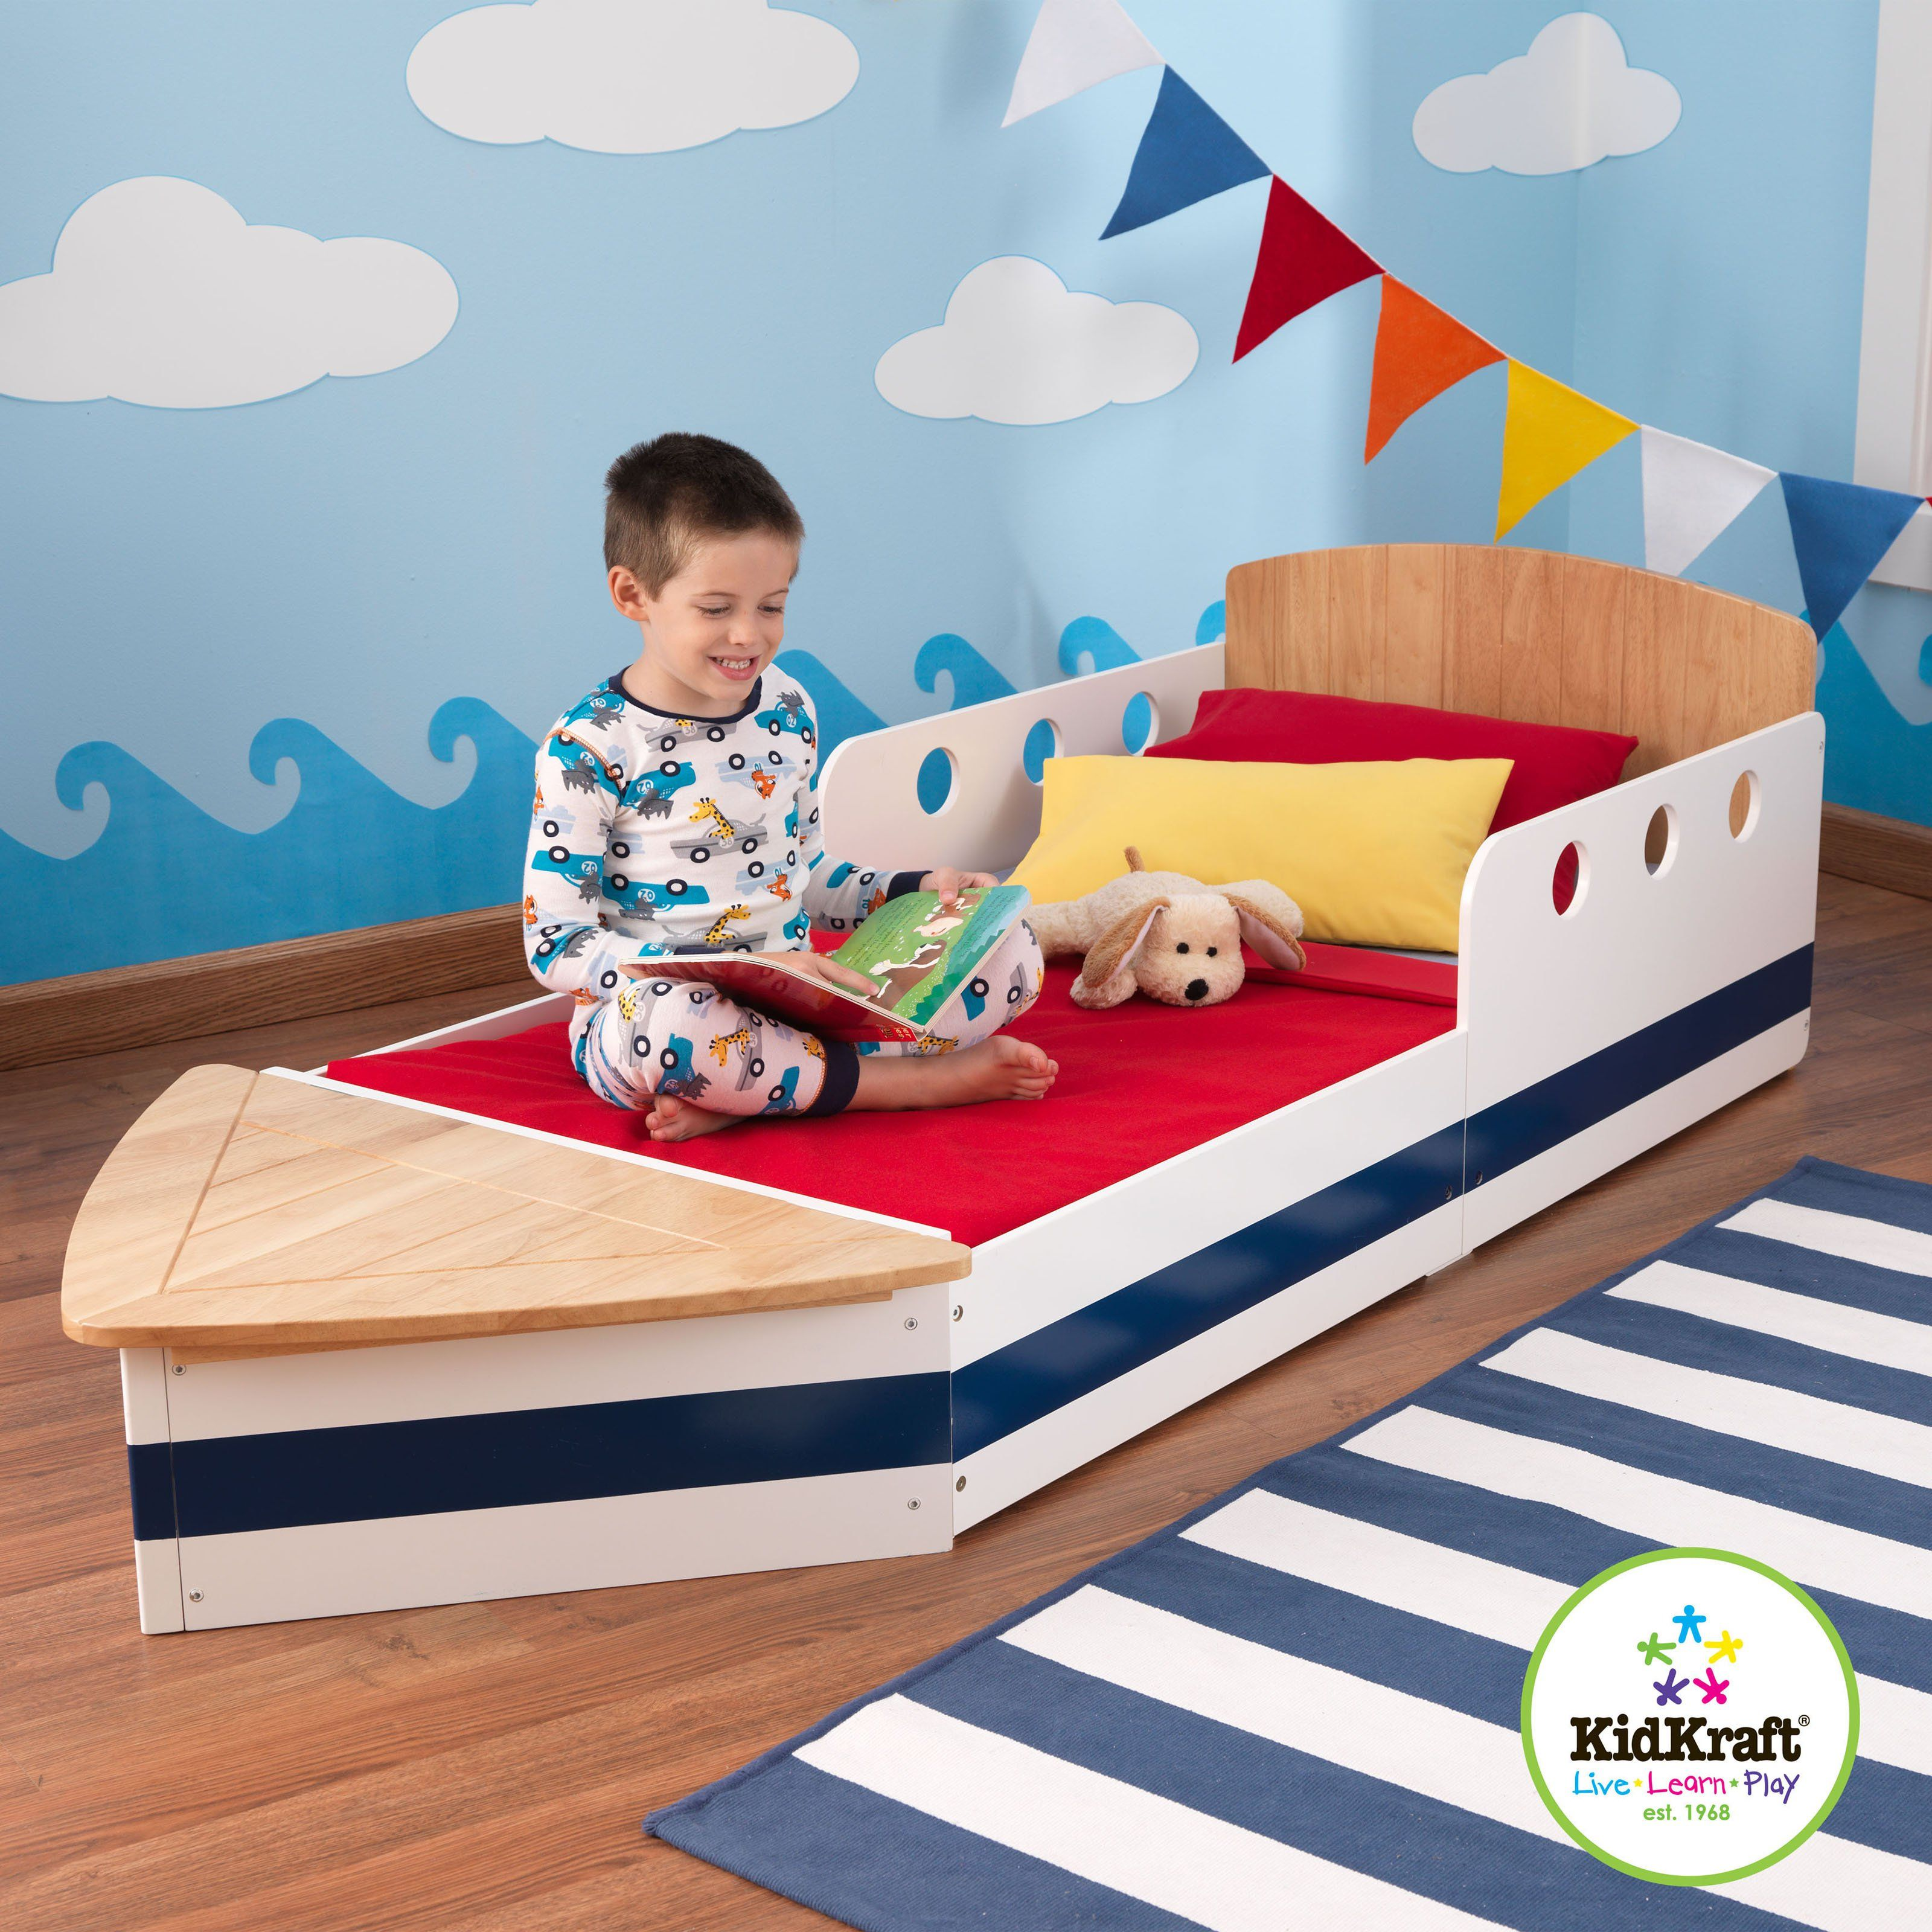 Kidkraft boat toddler bed 76251 your child can pretend that hes sailing the high seas in this bed without any worries of seasickness and that means